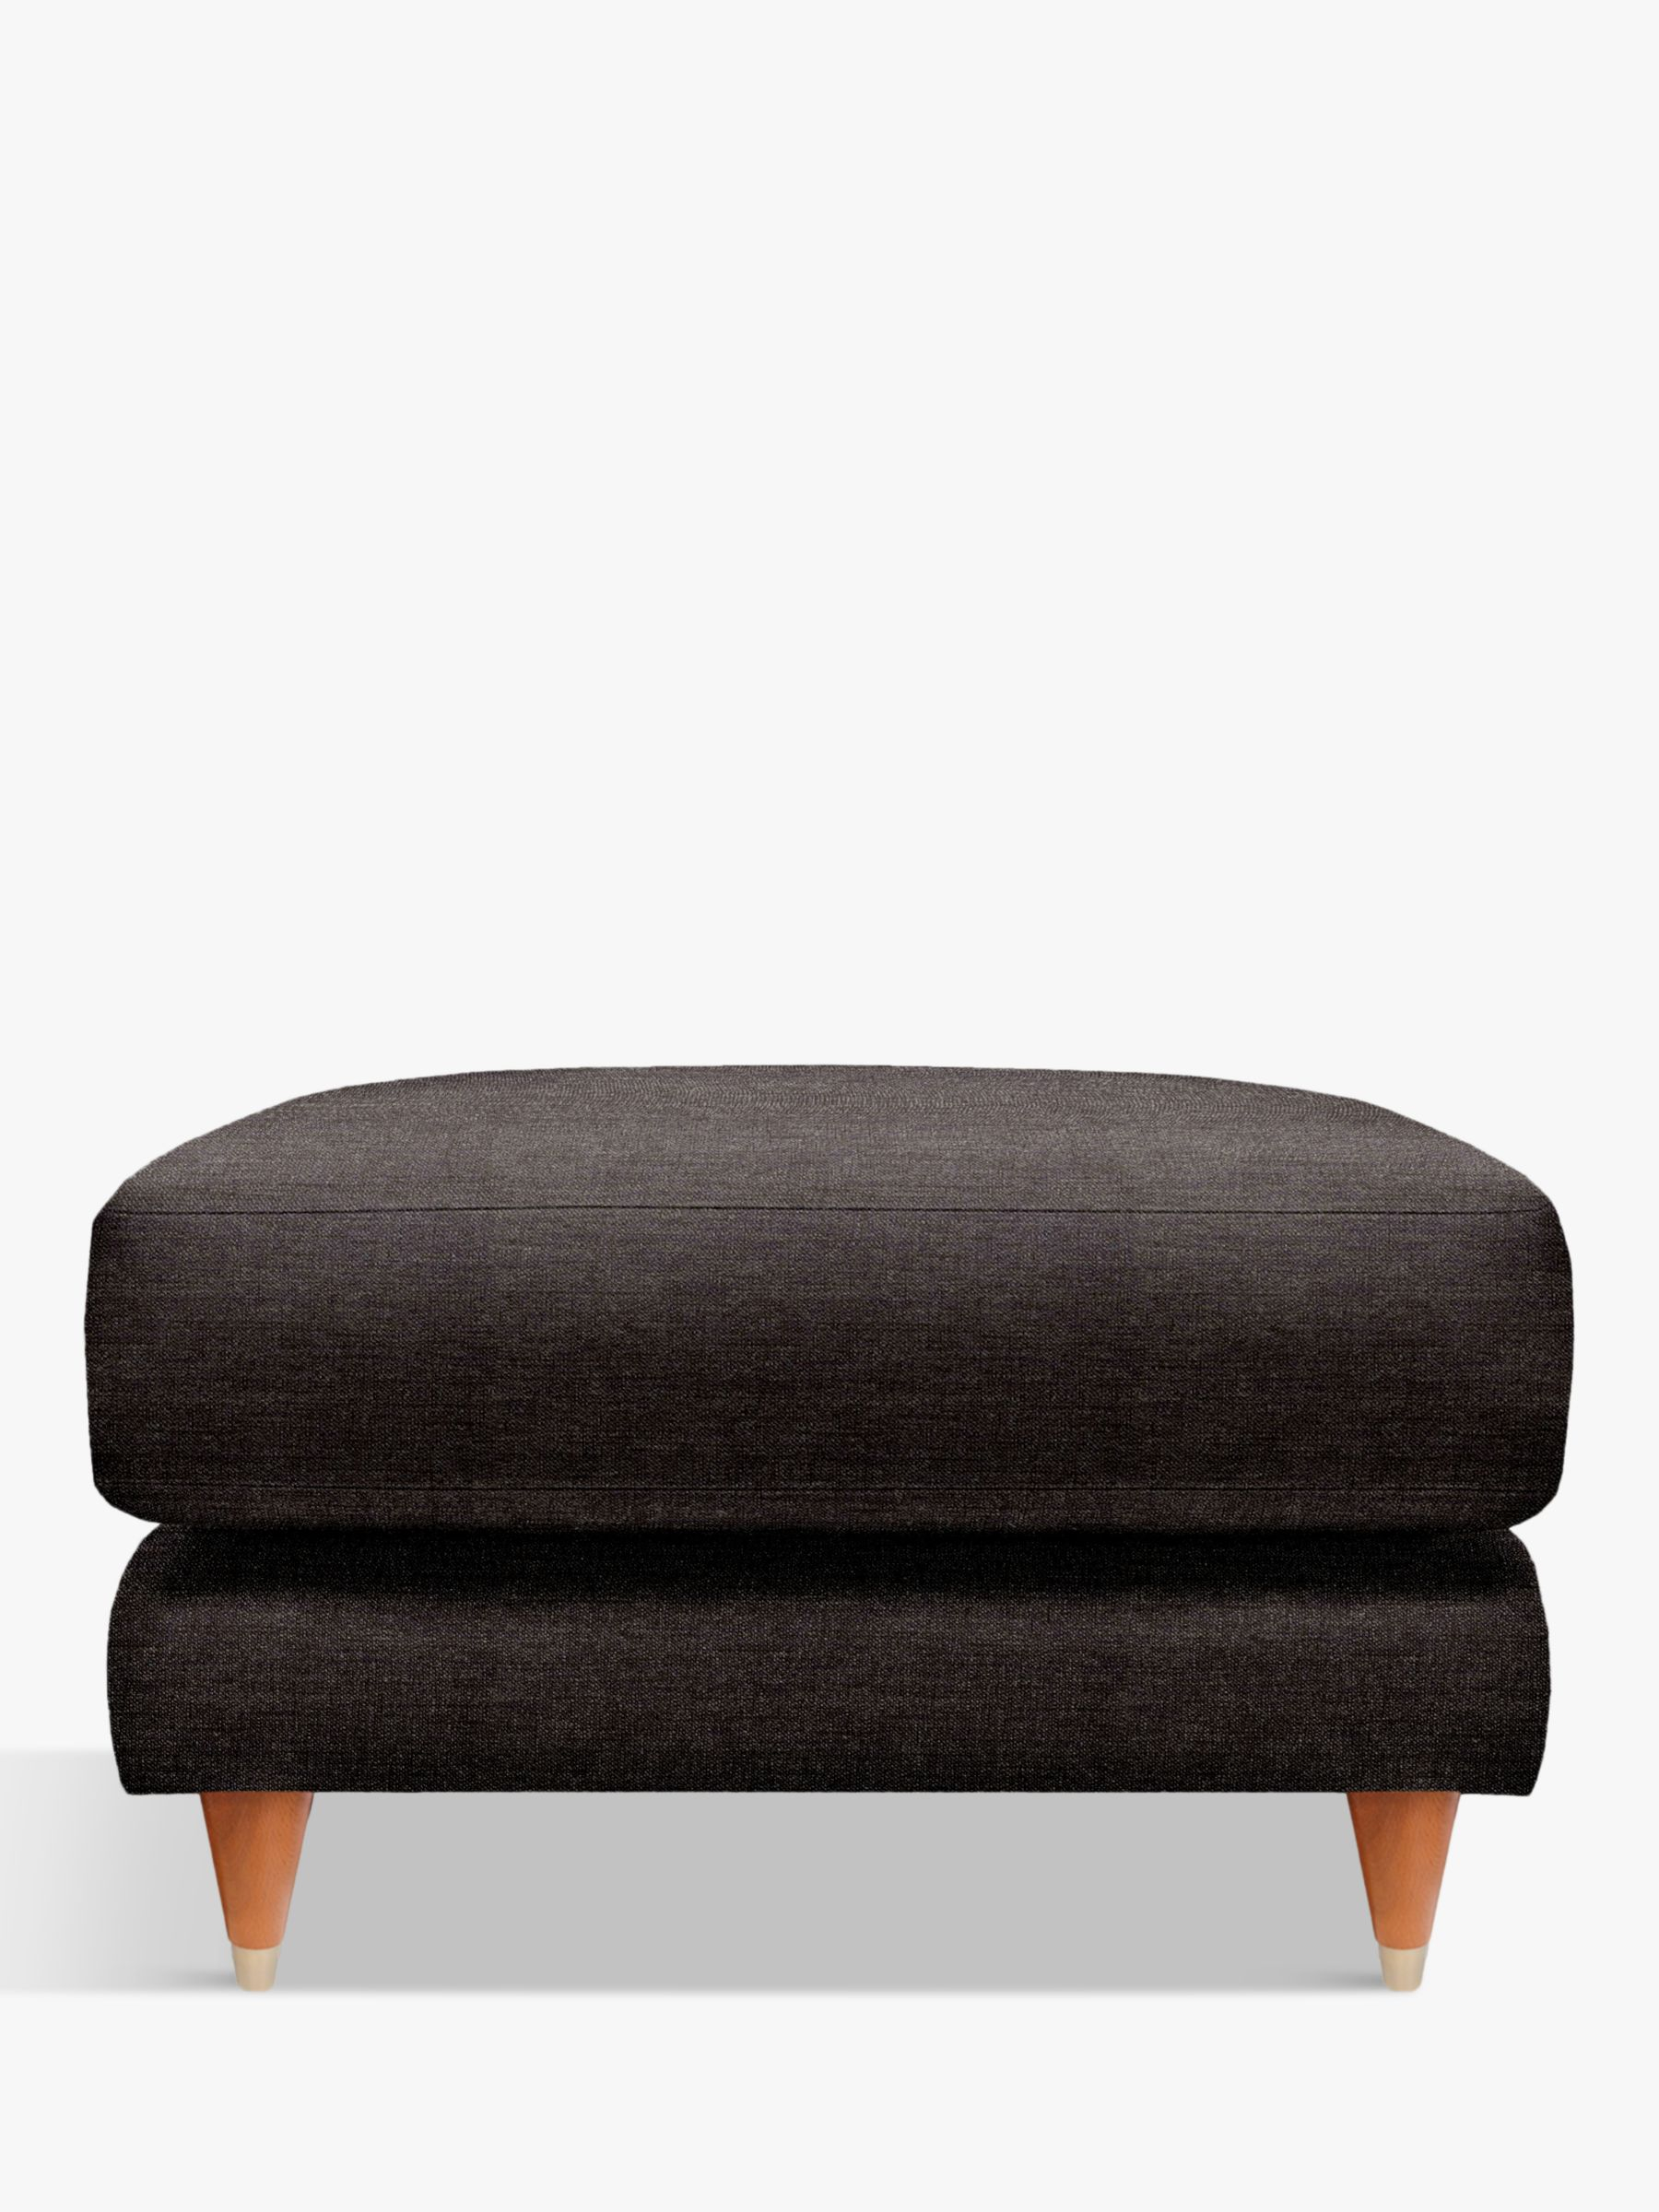 G Plan Vintage G Plan Vintage The Fifty Seven Footstool